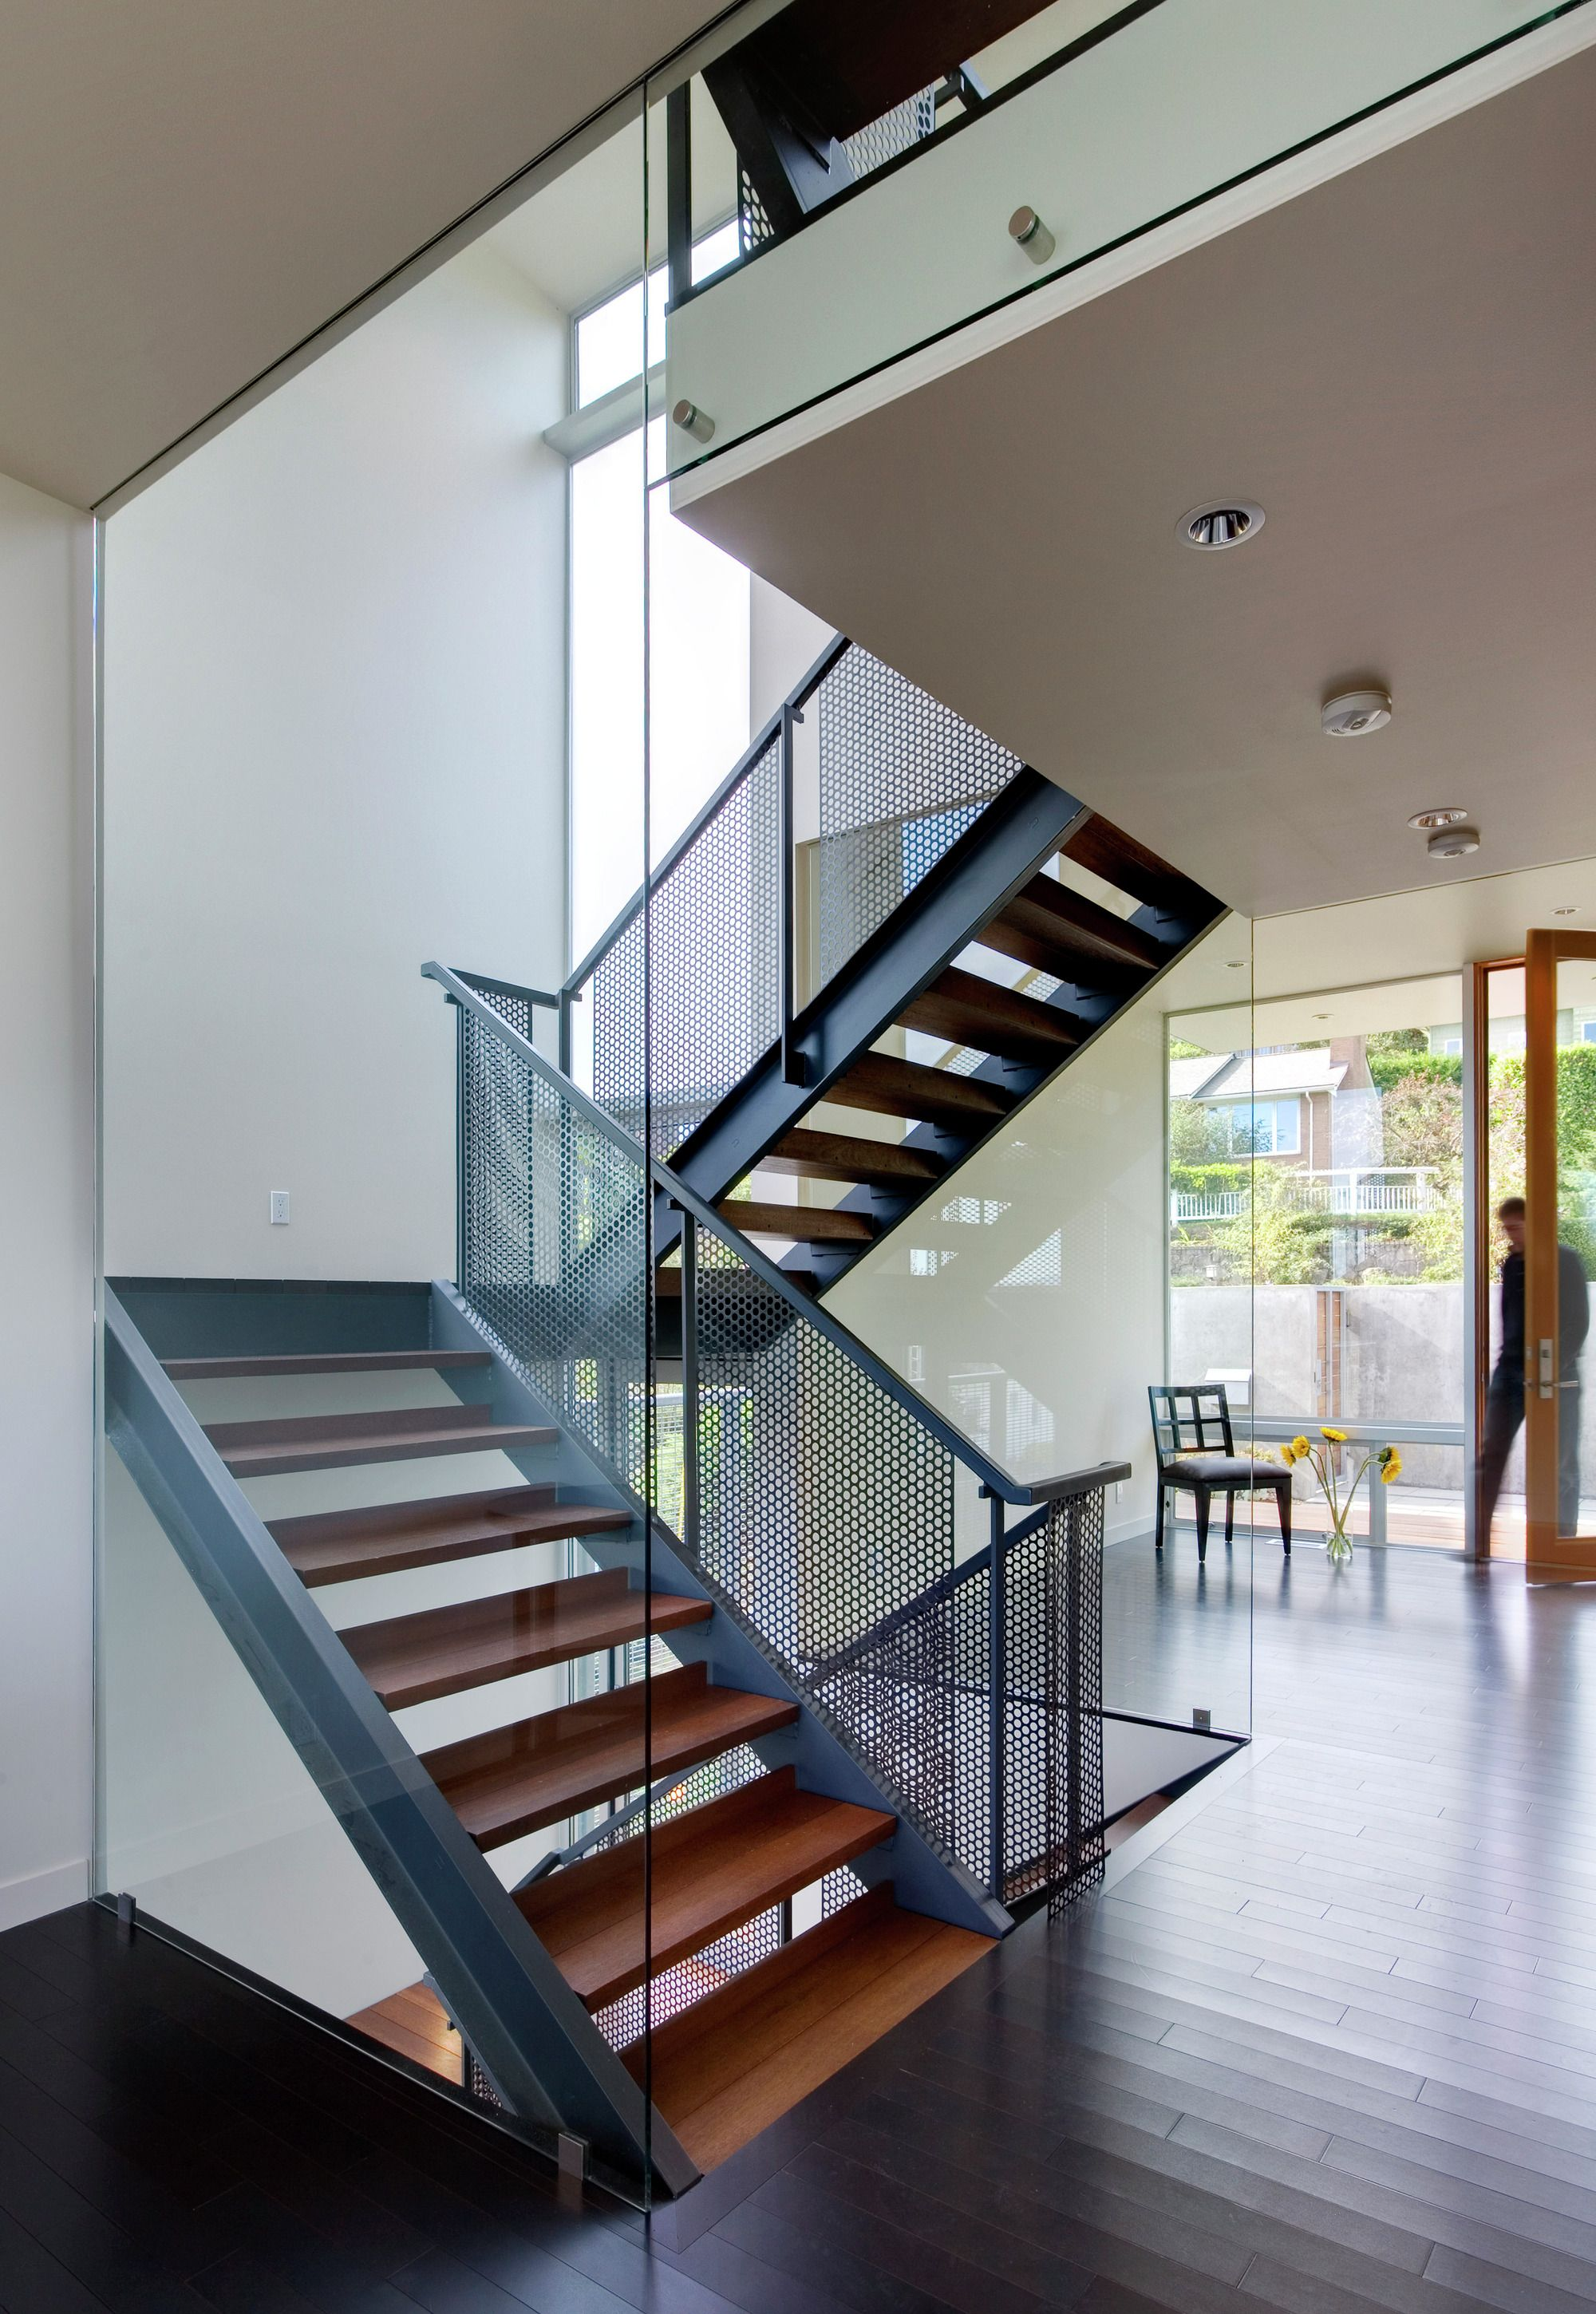 Gallery of stories gasparbonta in interiors pinterest garage loft stairs and contemporary decor also rh